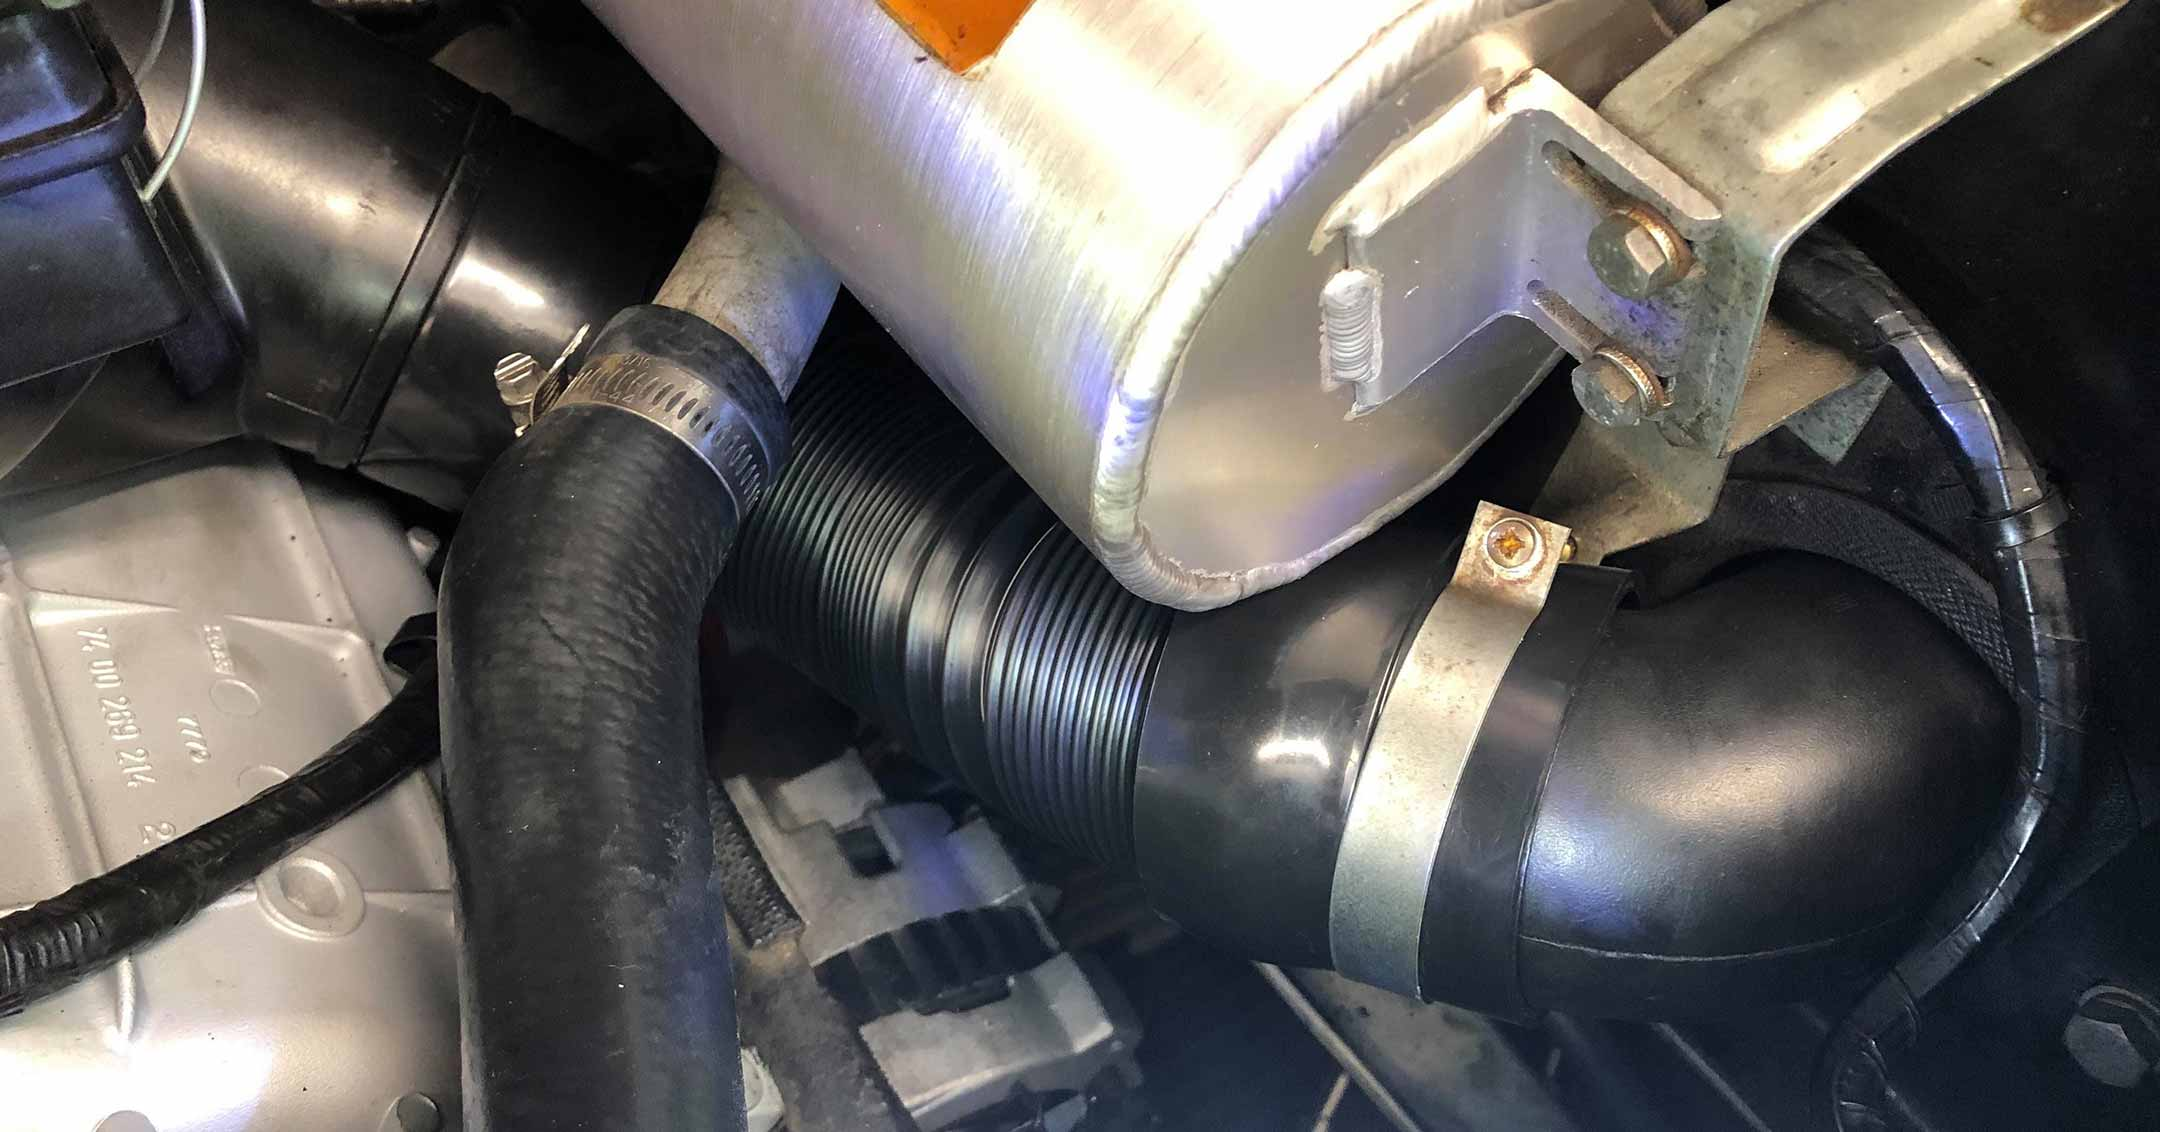 Cold Air Intake Update | DeLoreanDirectory.com